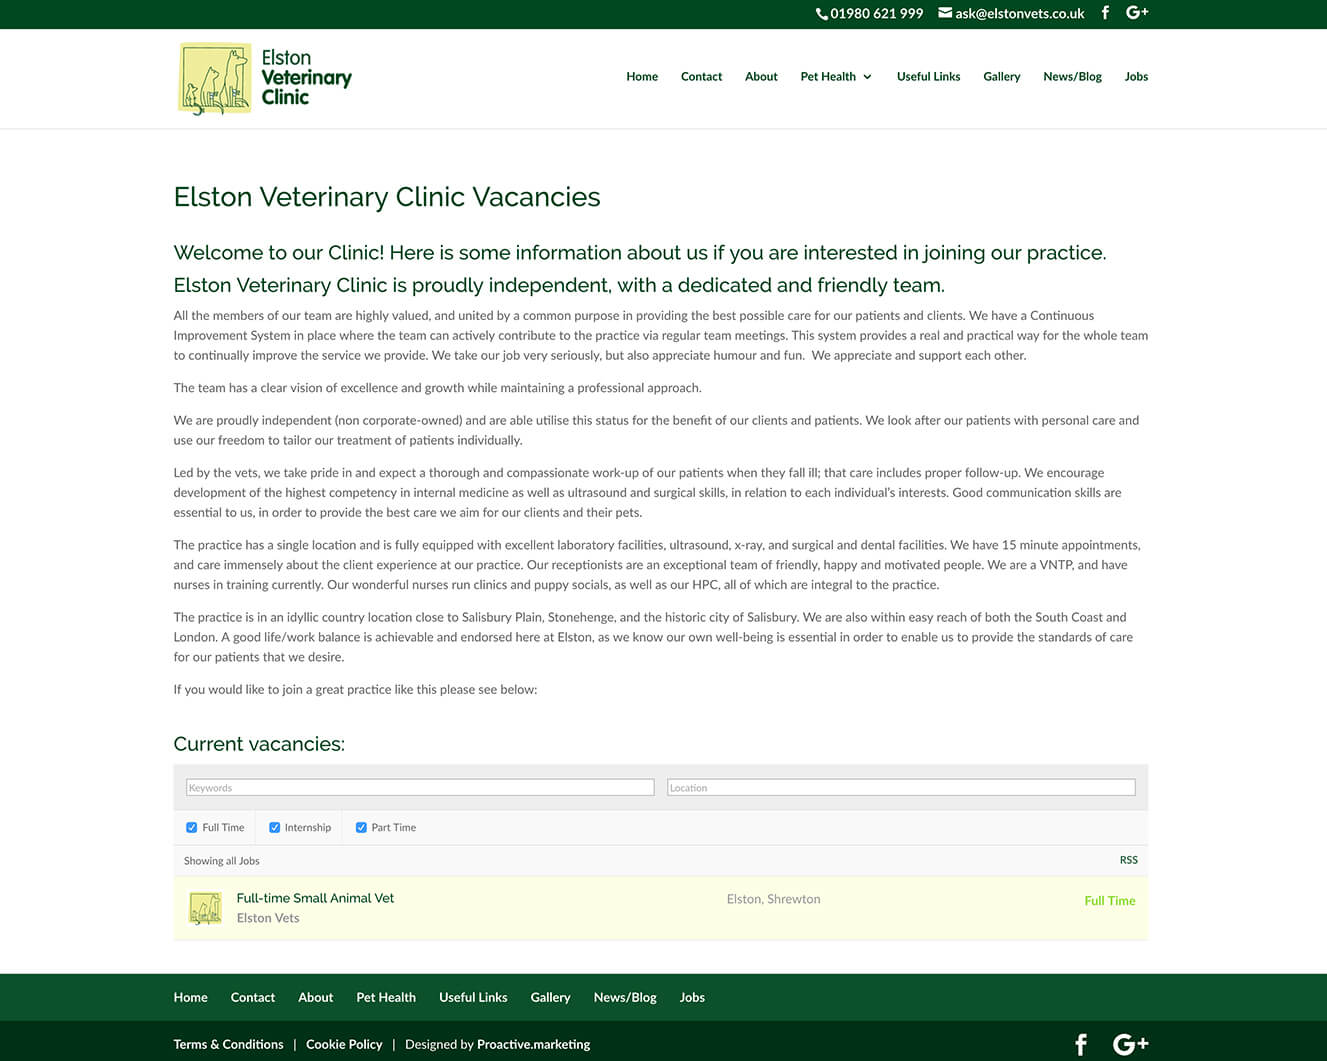 Veterinary website design for Elston Vets: Job vacancy page